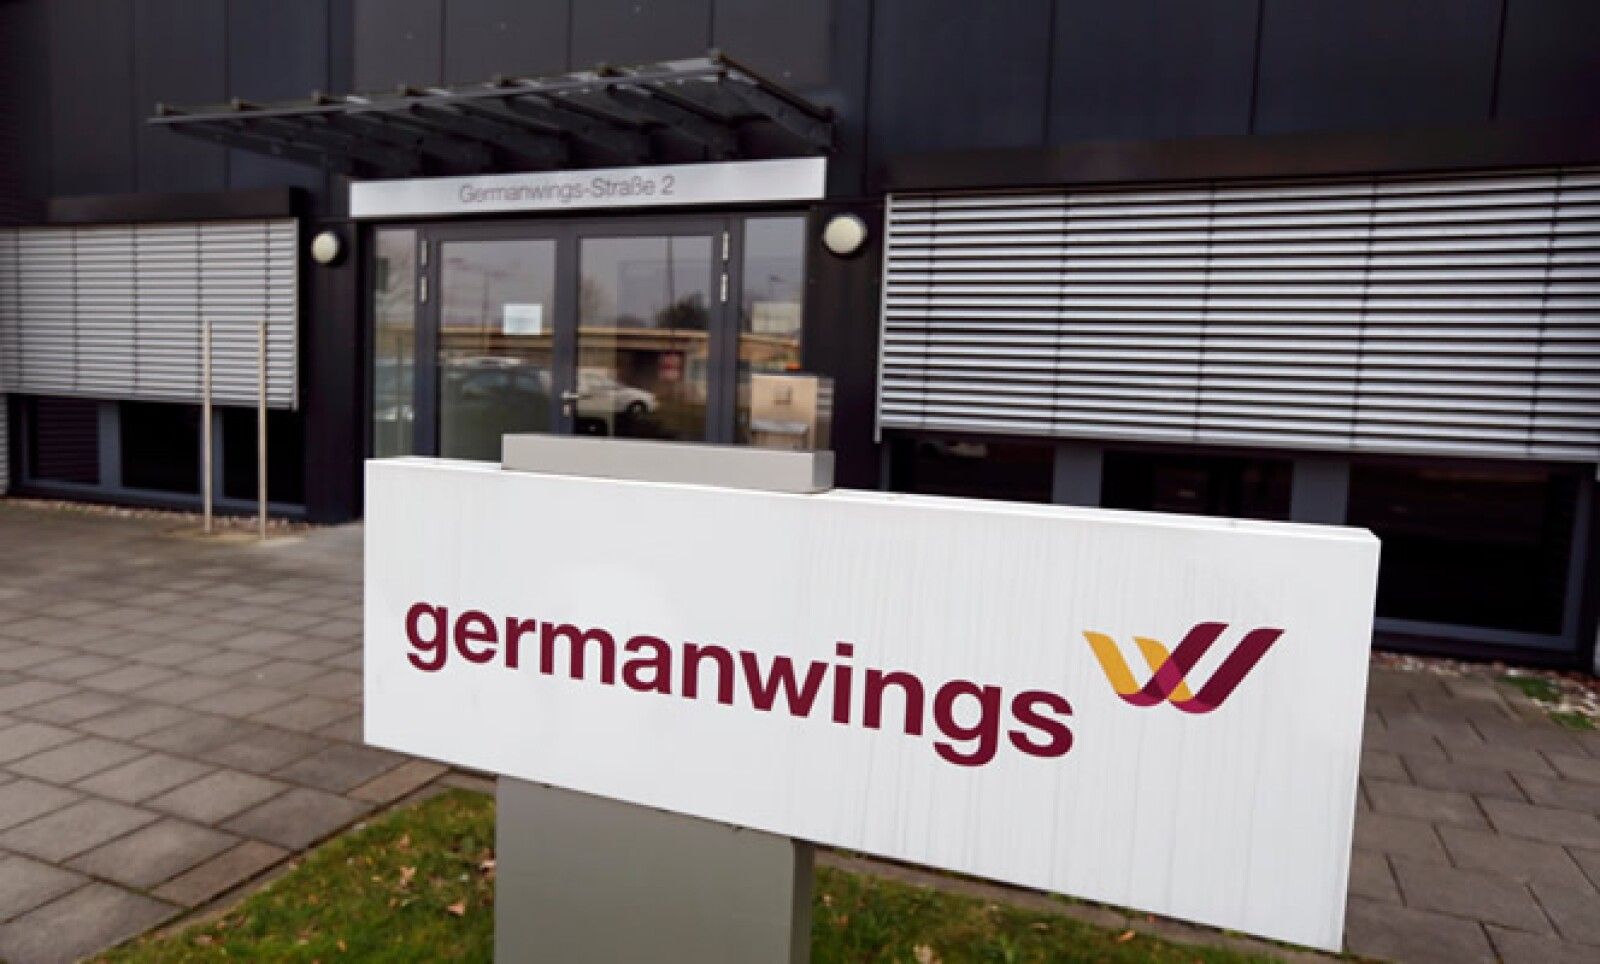 Germanwings, la operadora del vuelo, lamentó en Twitter el incidente.